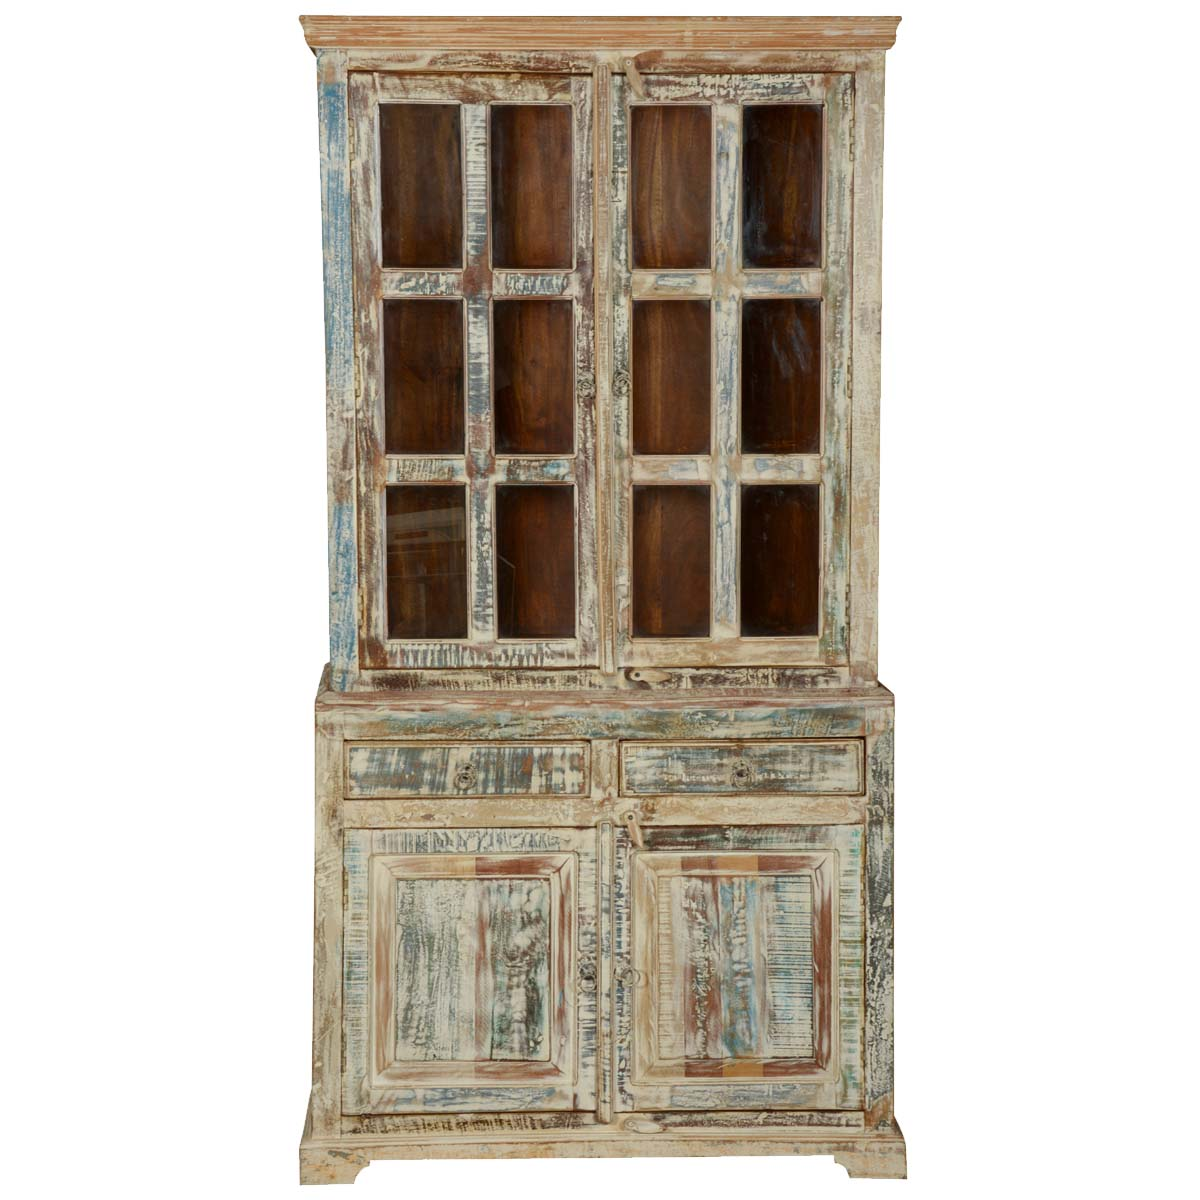 White Washed Reclaimed Wood Breakfront Hutch Buffet Cabinet : 72821 from www.sierralivingconcepts.com size 1200 x 1200 jpeg 152kB